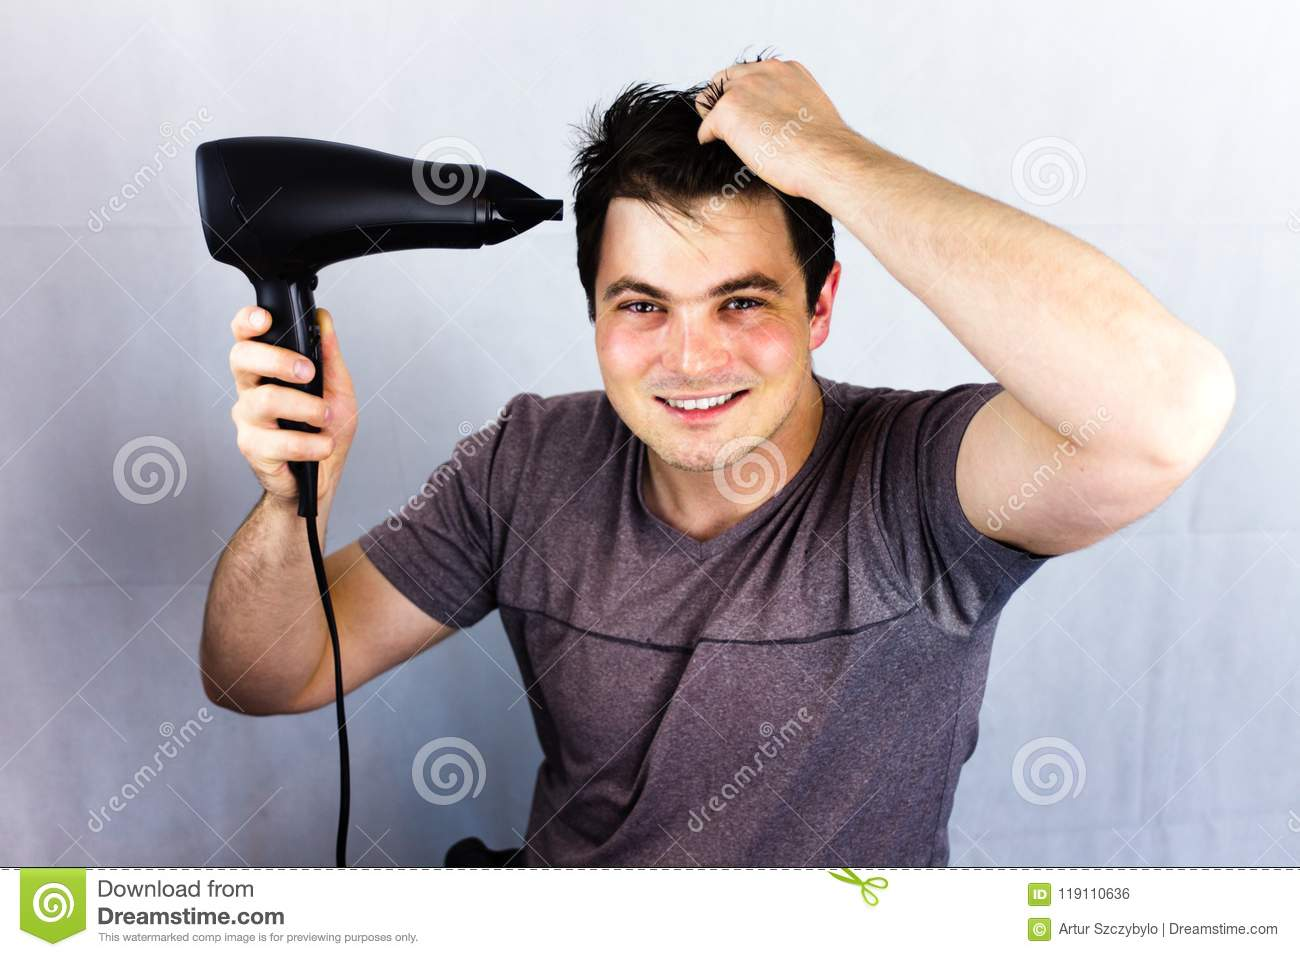 Teenager smiling while he dries his hair. Man holding hair blower. Young man dries hair with an electric fan. Preparing a haircut